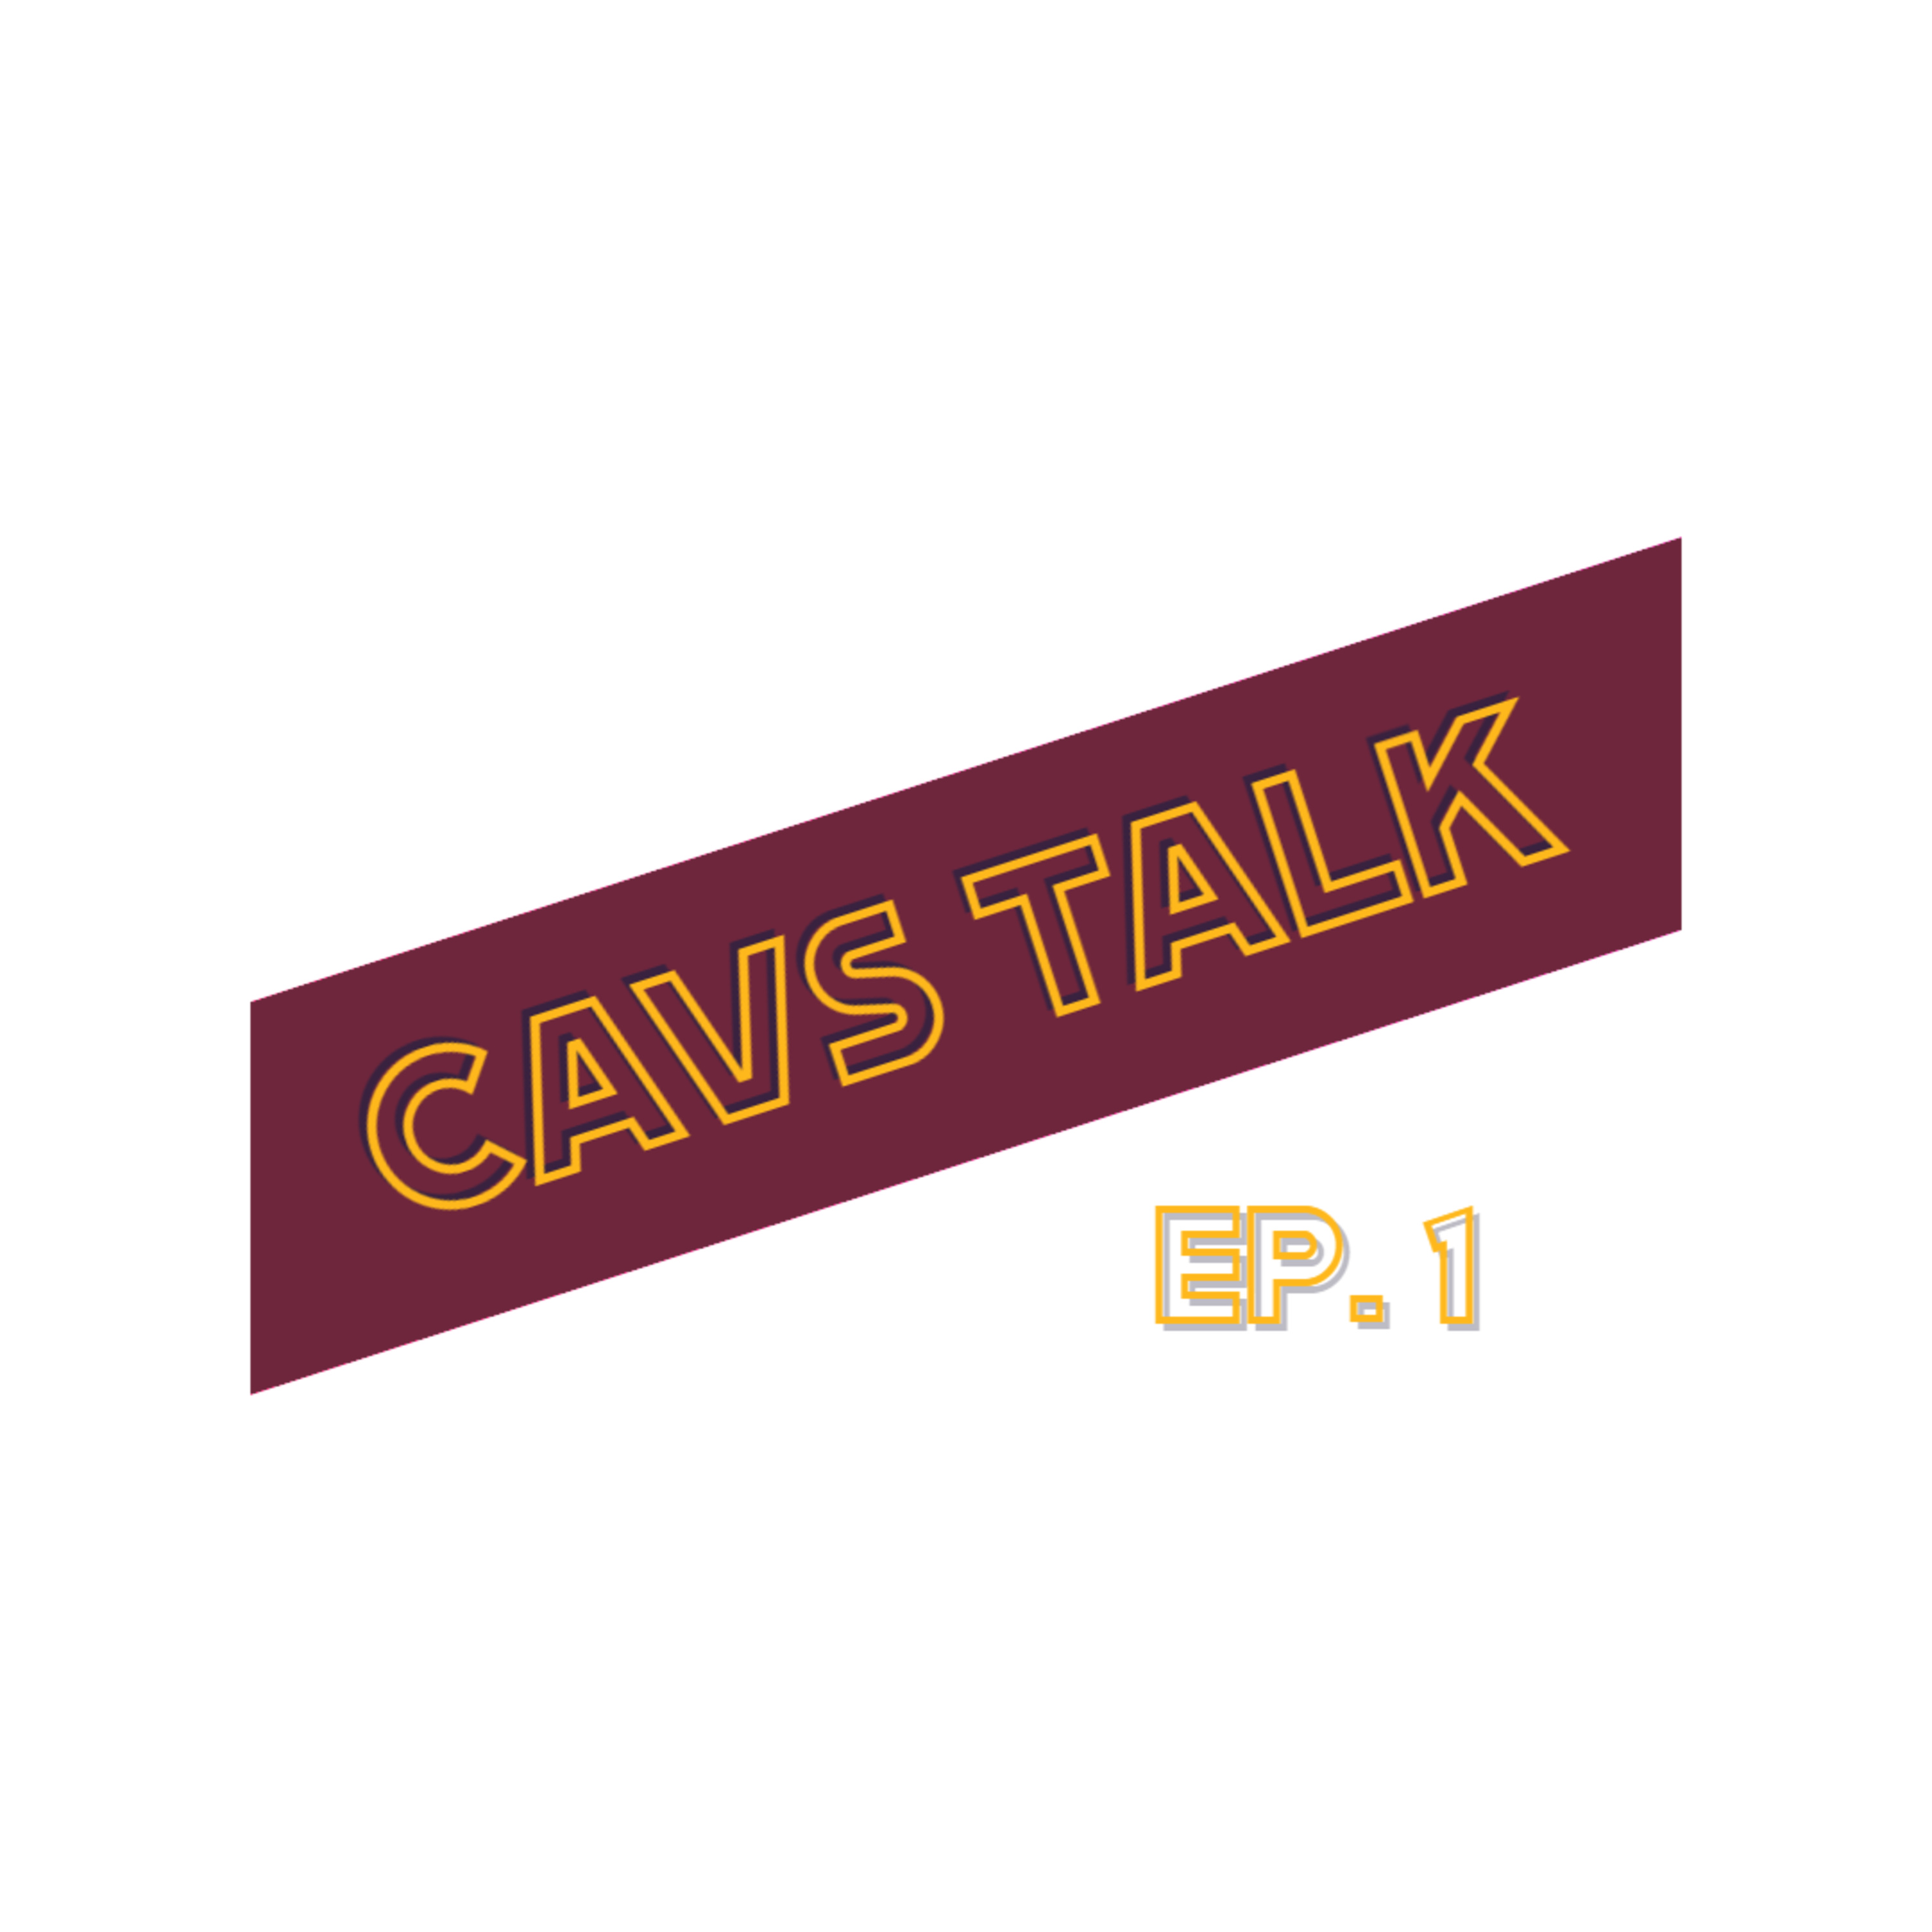 2019-20 Season Preview: For the Cavaliers and For Us